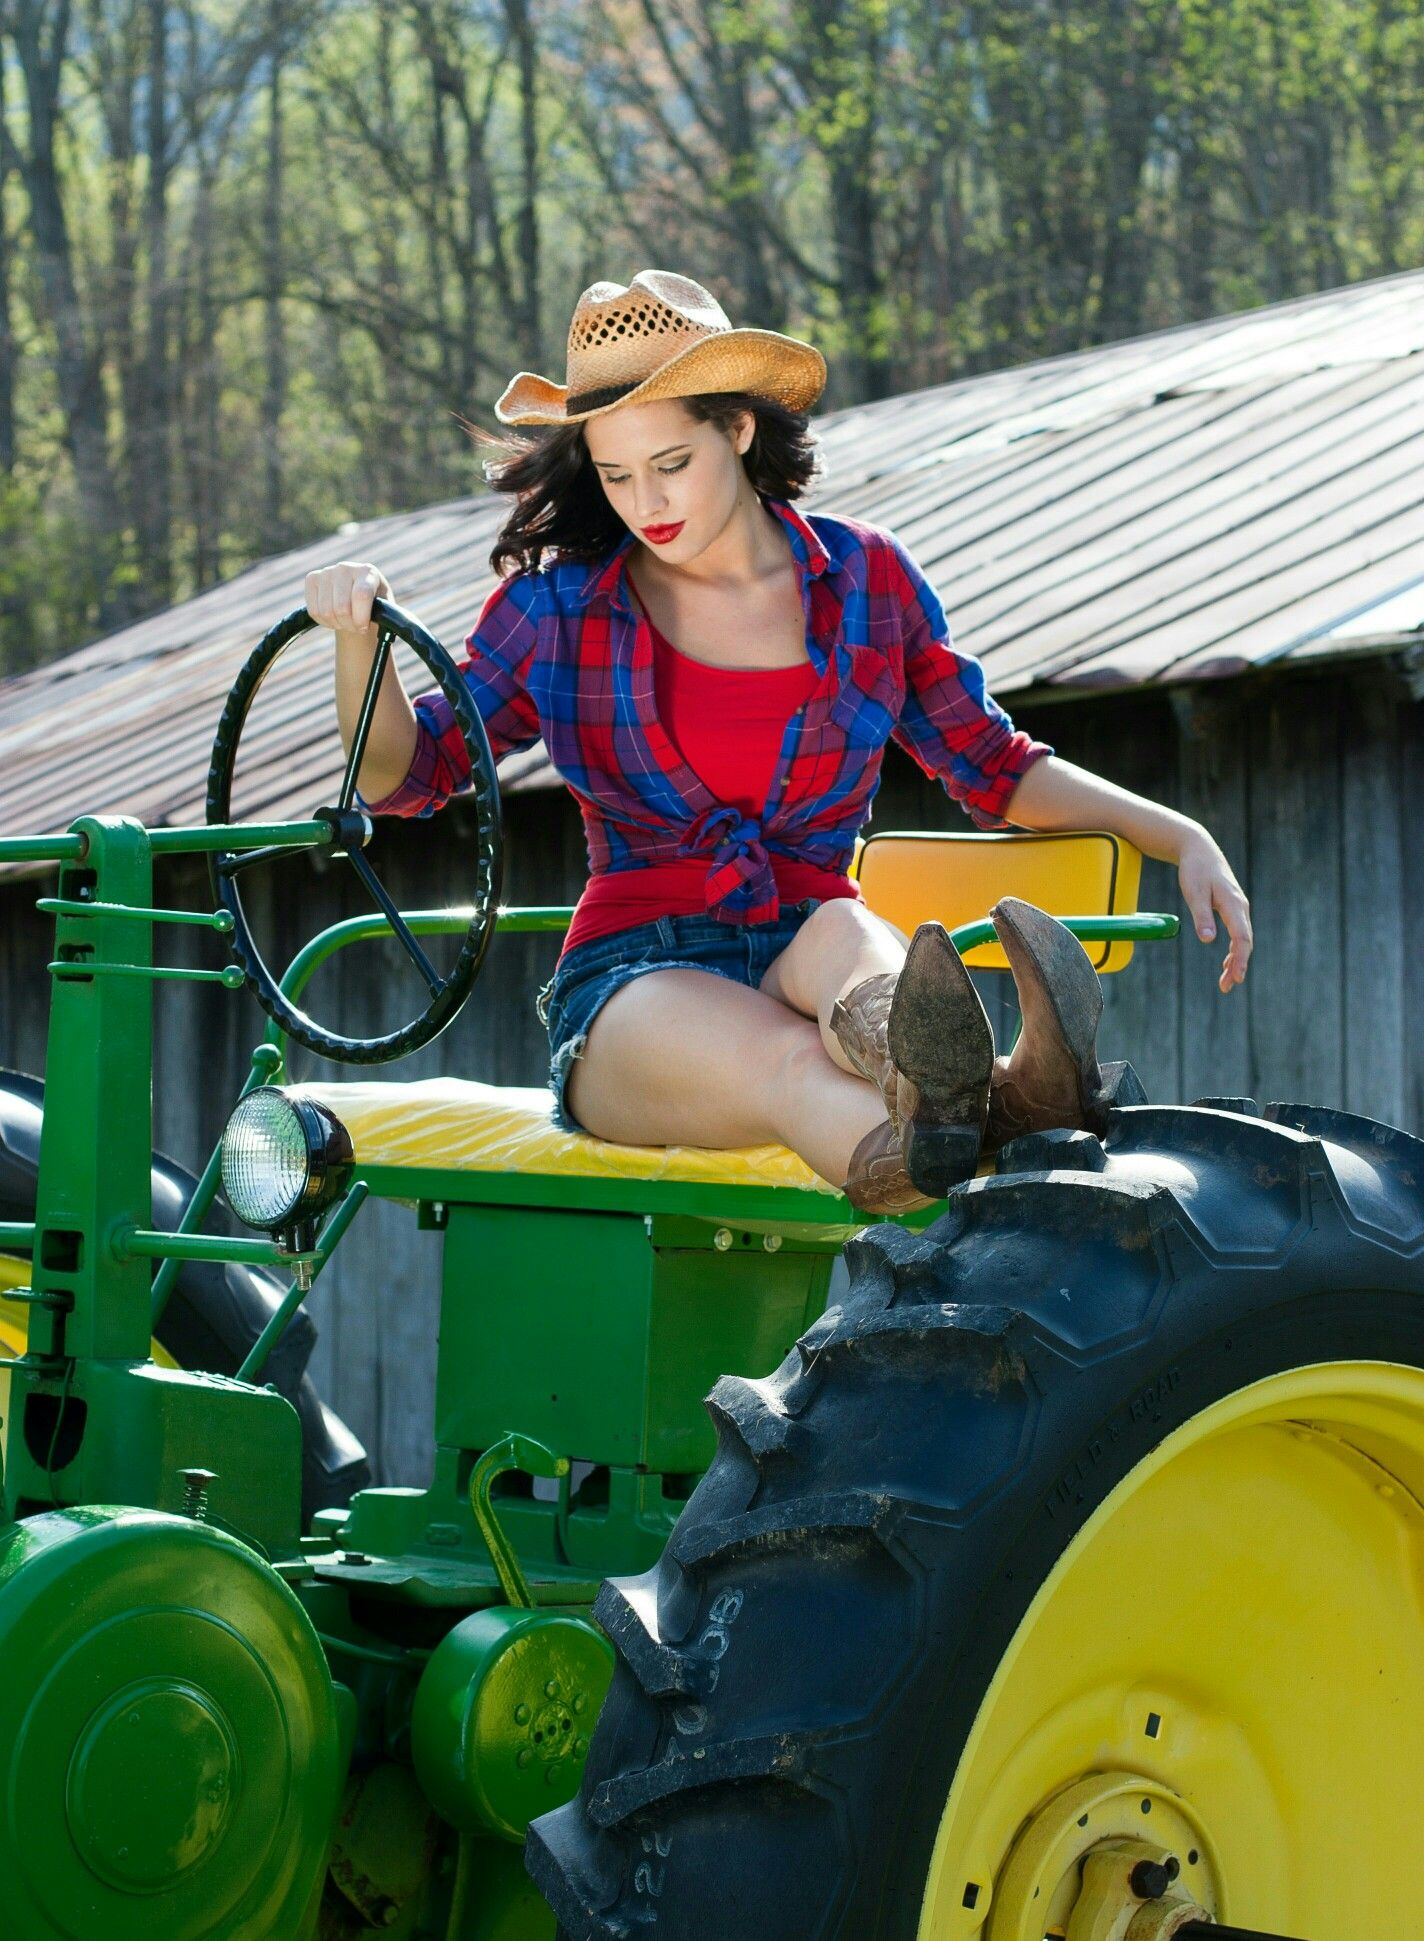 pictures of girls on tractors